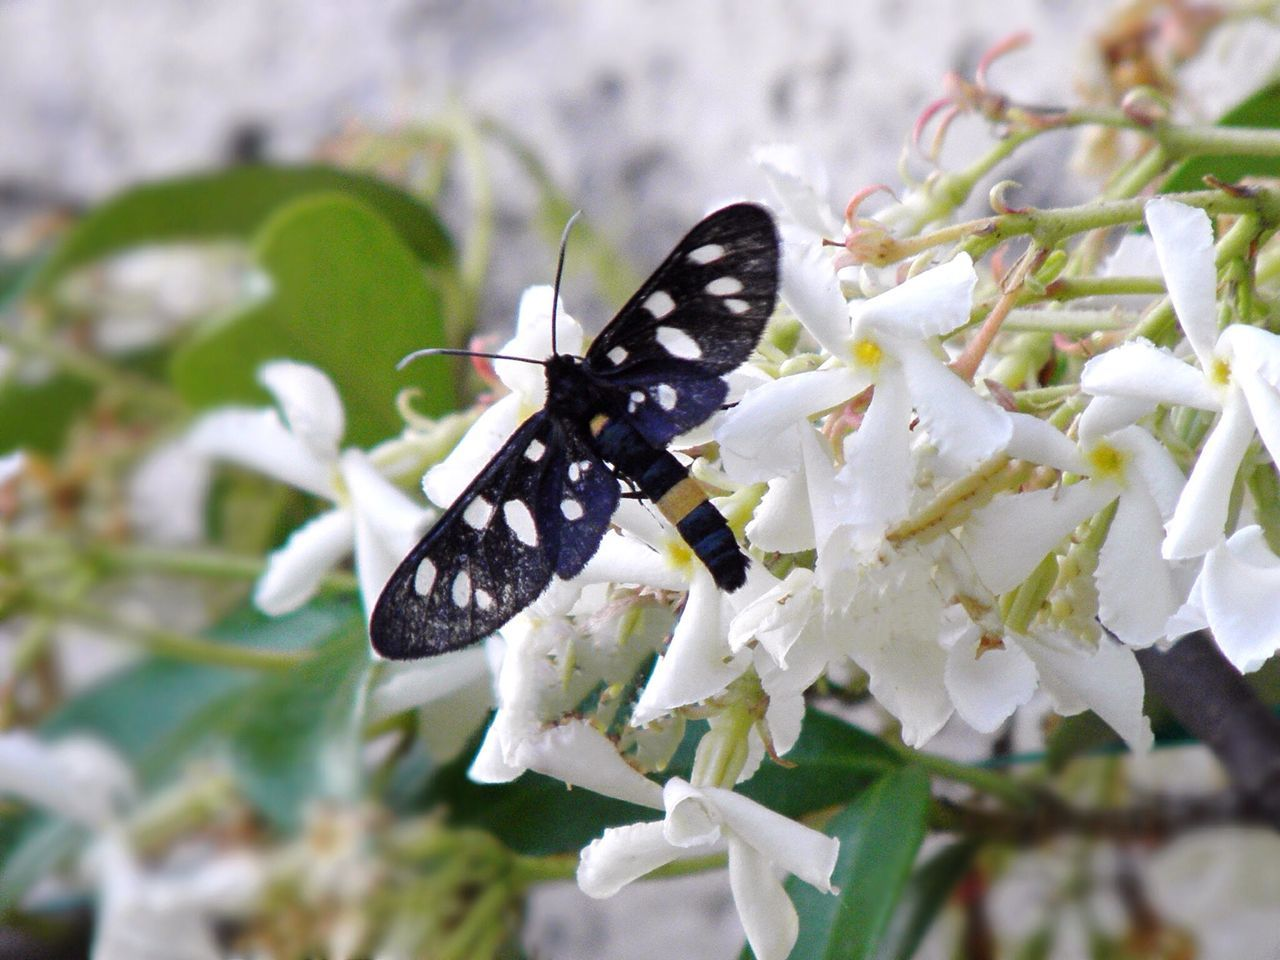 Amata Phegea Phegea Flower Beauty In Nature One Animal Insect Animals In The Wild Nature Growth Animal Themes Fragility Freshness Plant Petal Close-up Pollination Butterfly - Insect Animal Wildlife Day No People Outdoors Flower Head Jasmine Butterfly Zoology